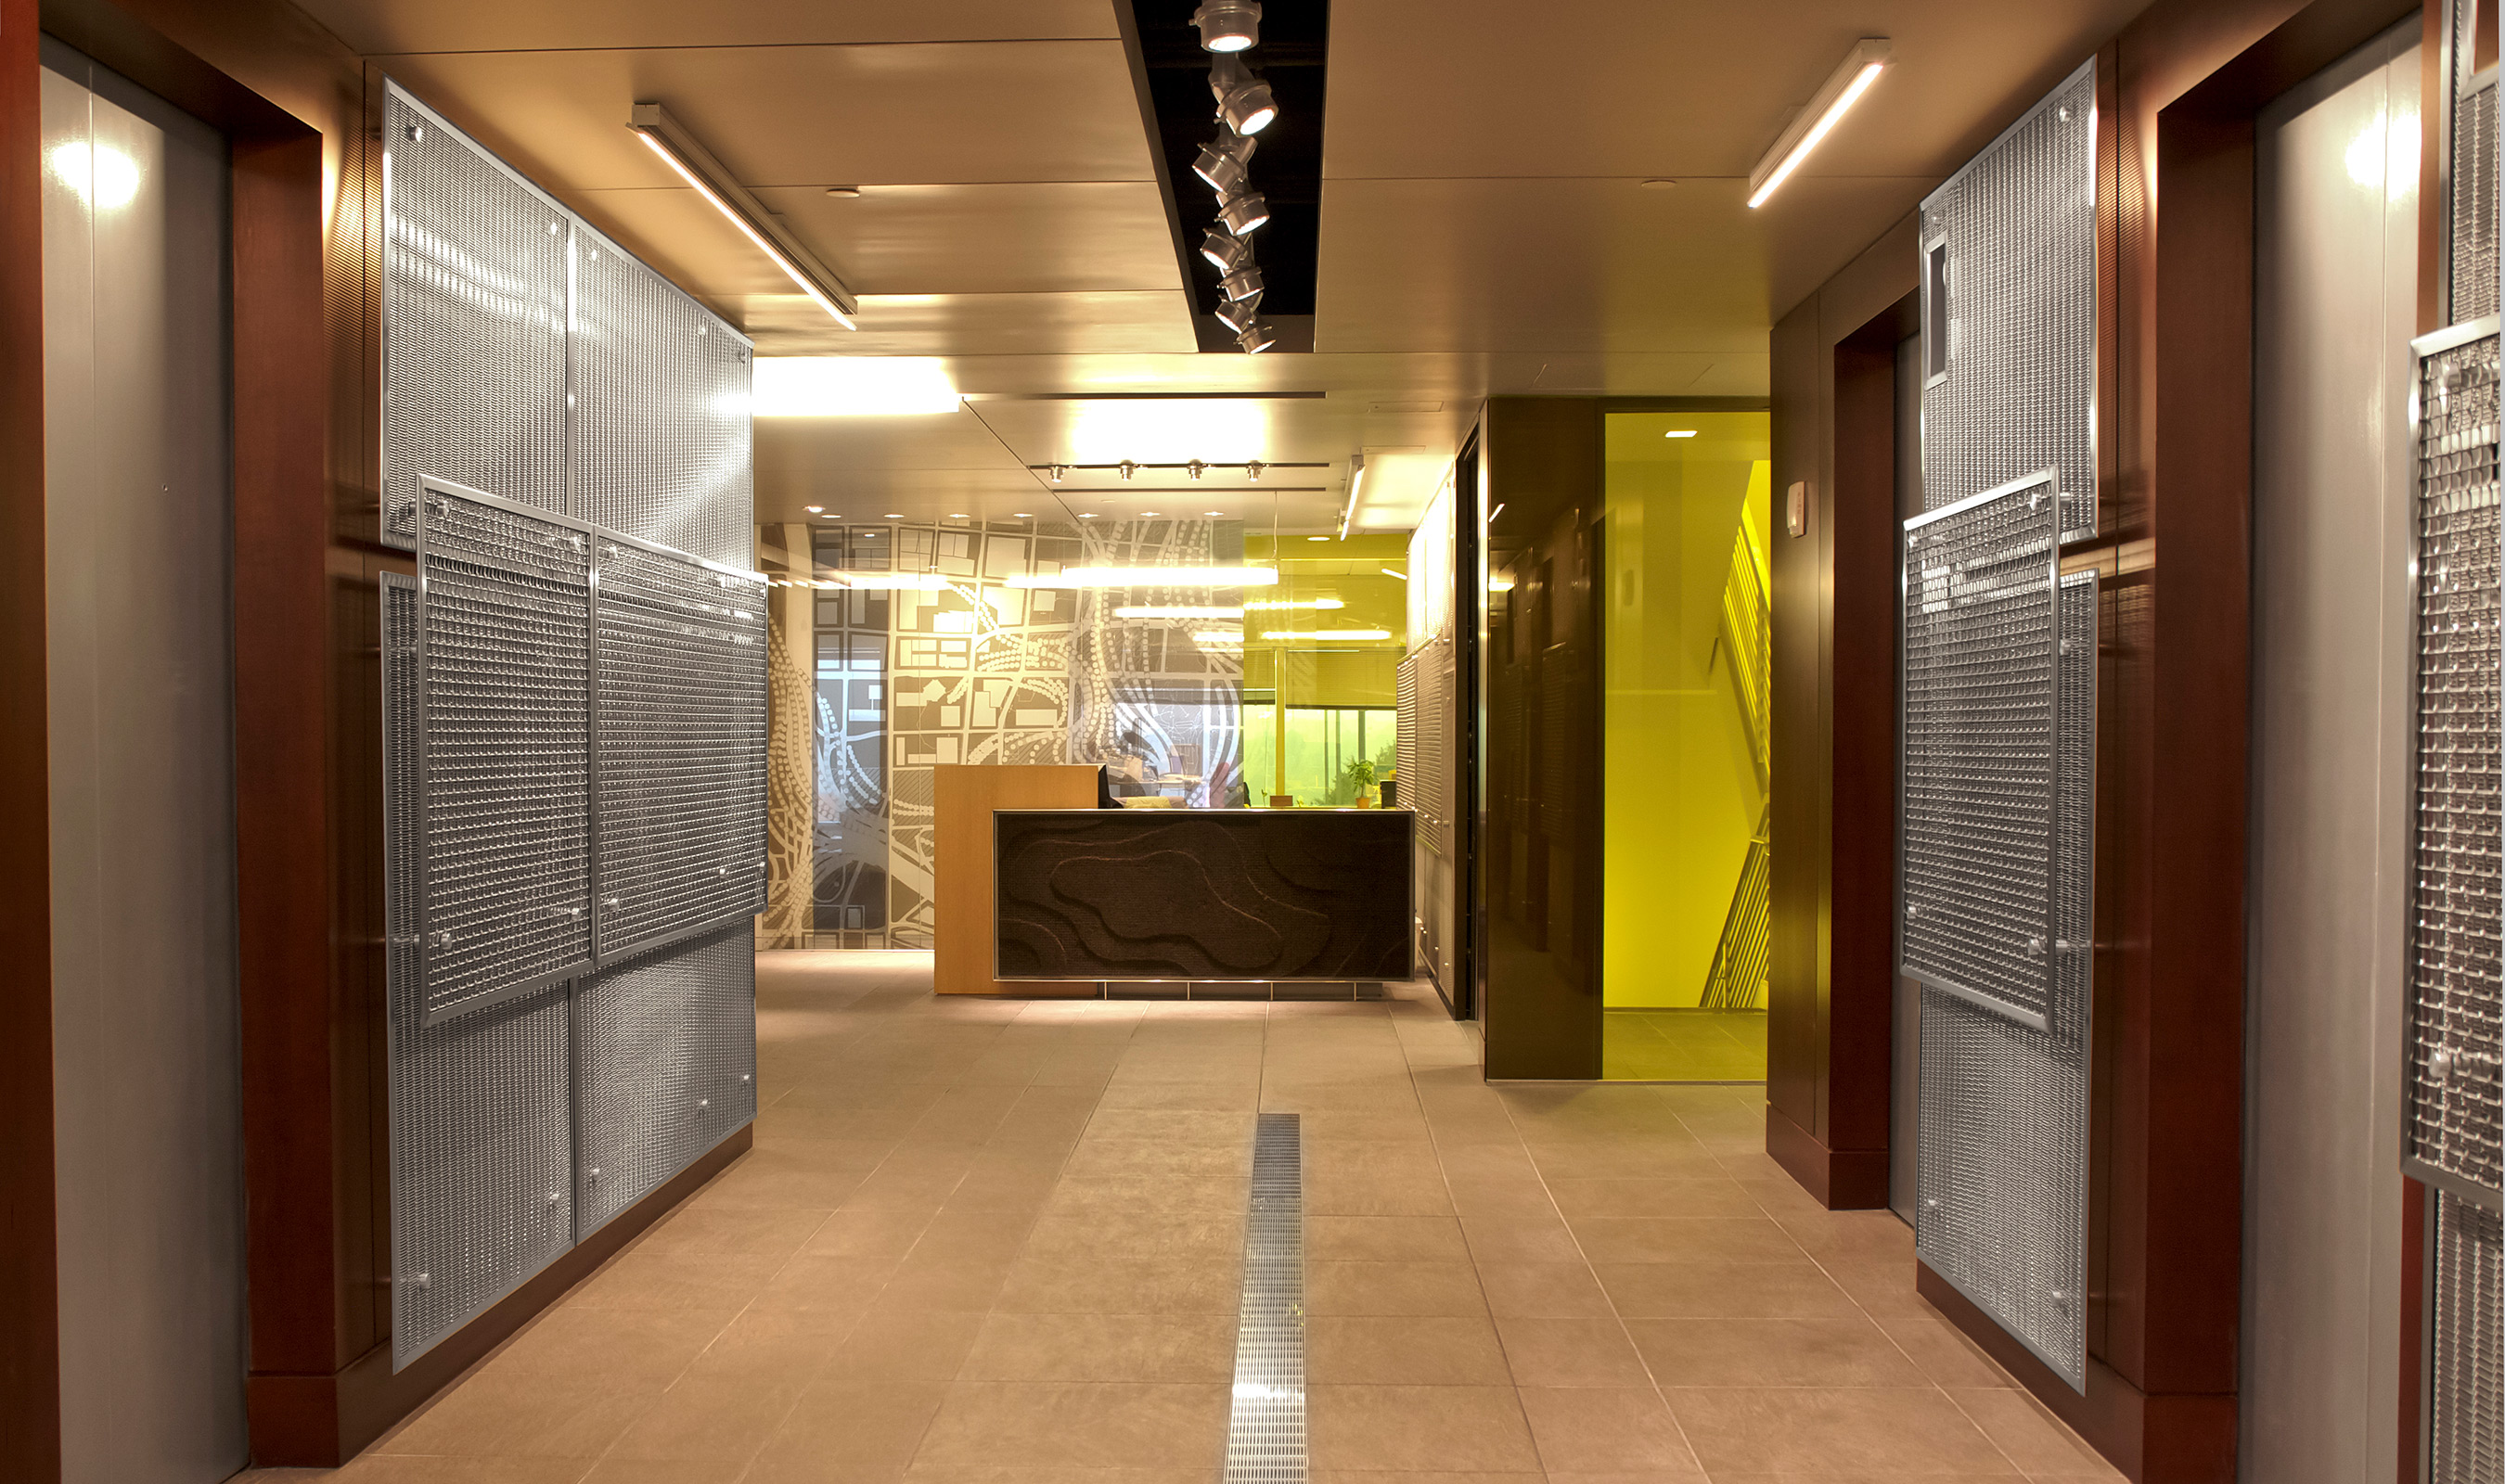 The layered decorative mesh creates a stunning visual to this elevator lobby in the AECOM offices.